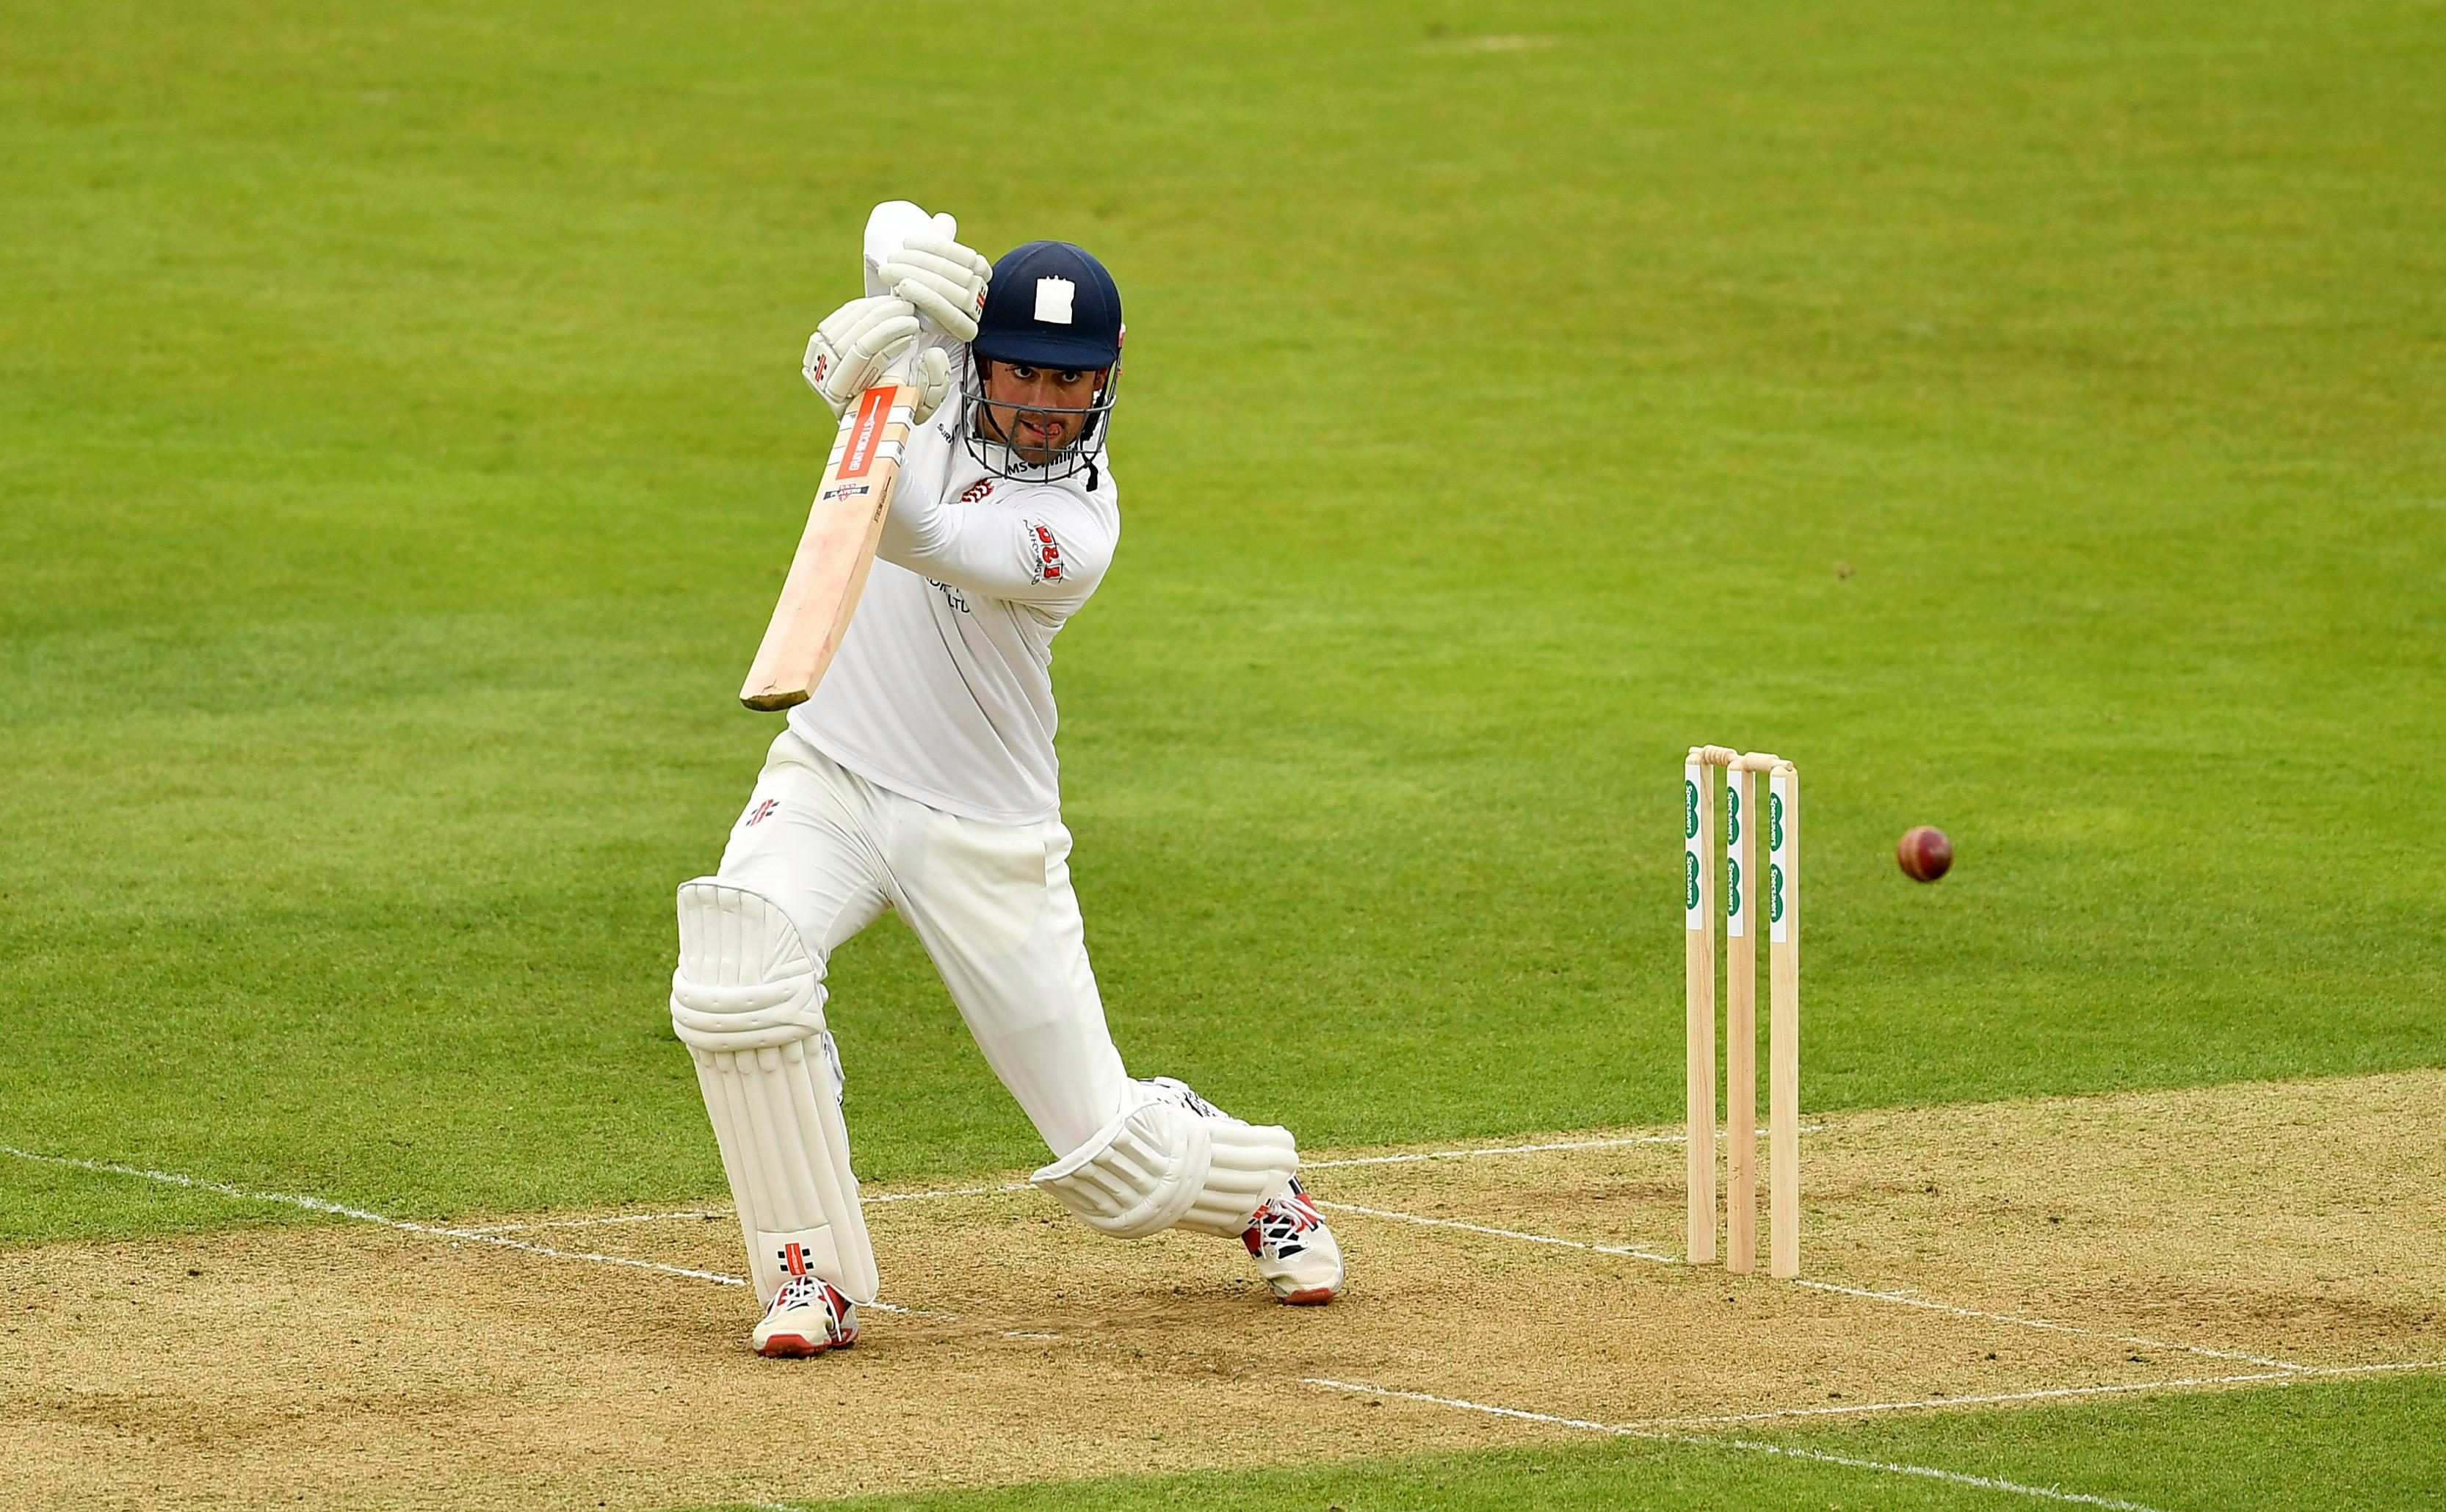 Alastair Cook put in an impressive showing during his first outing of the county season